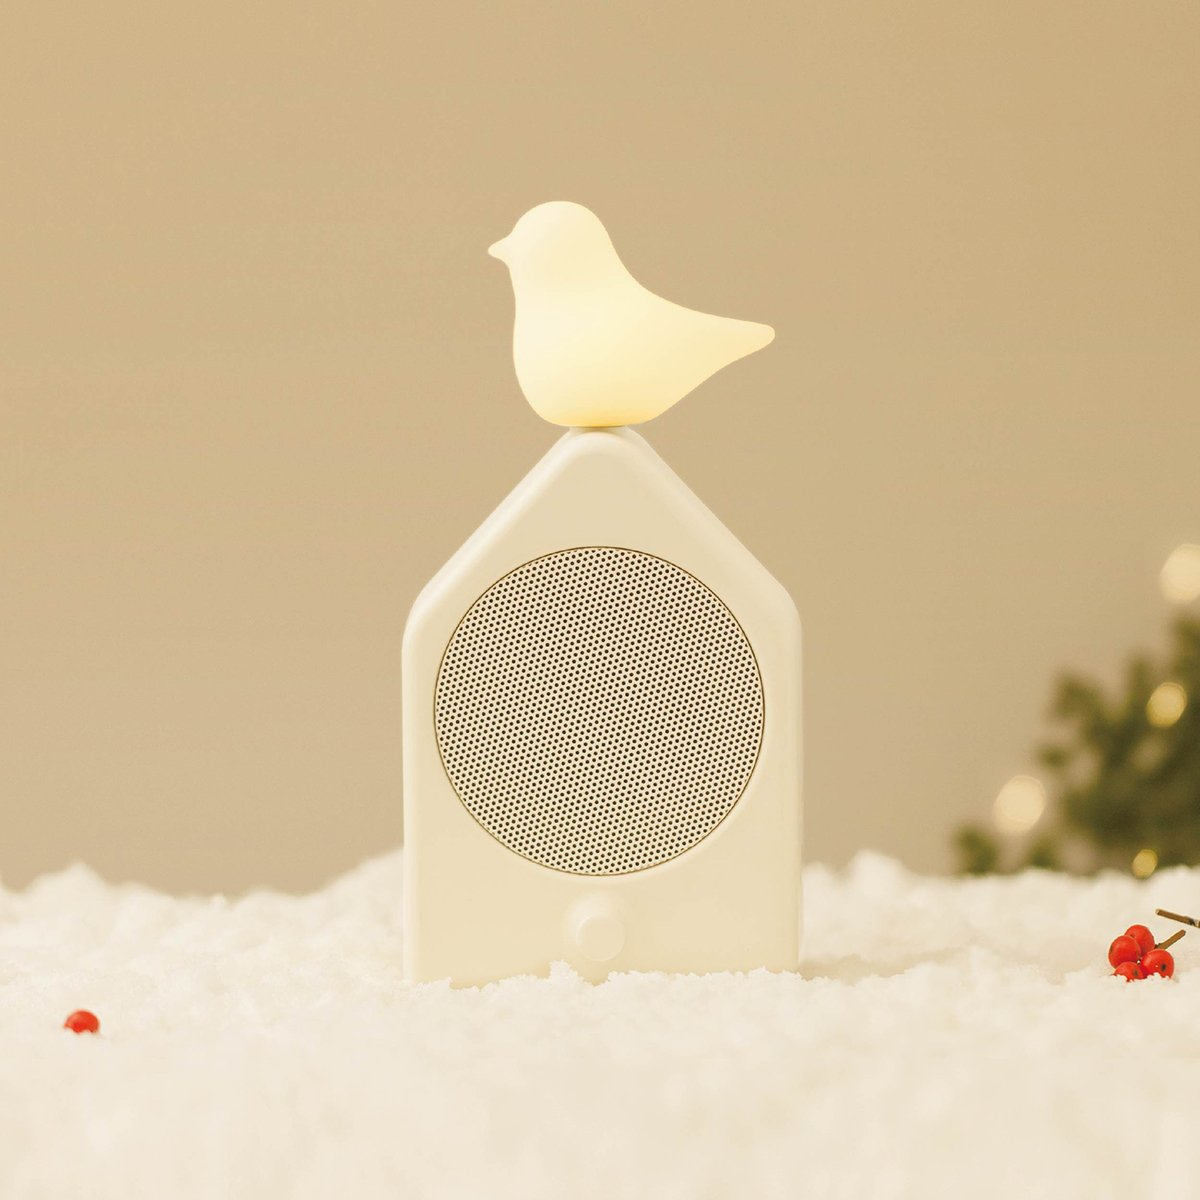 Emoi Bluetooth Speakers with Lights, Multifunctional Bluetooth Audio,Beside Lamp with Nature Design